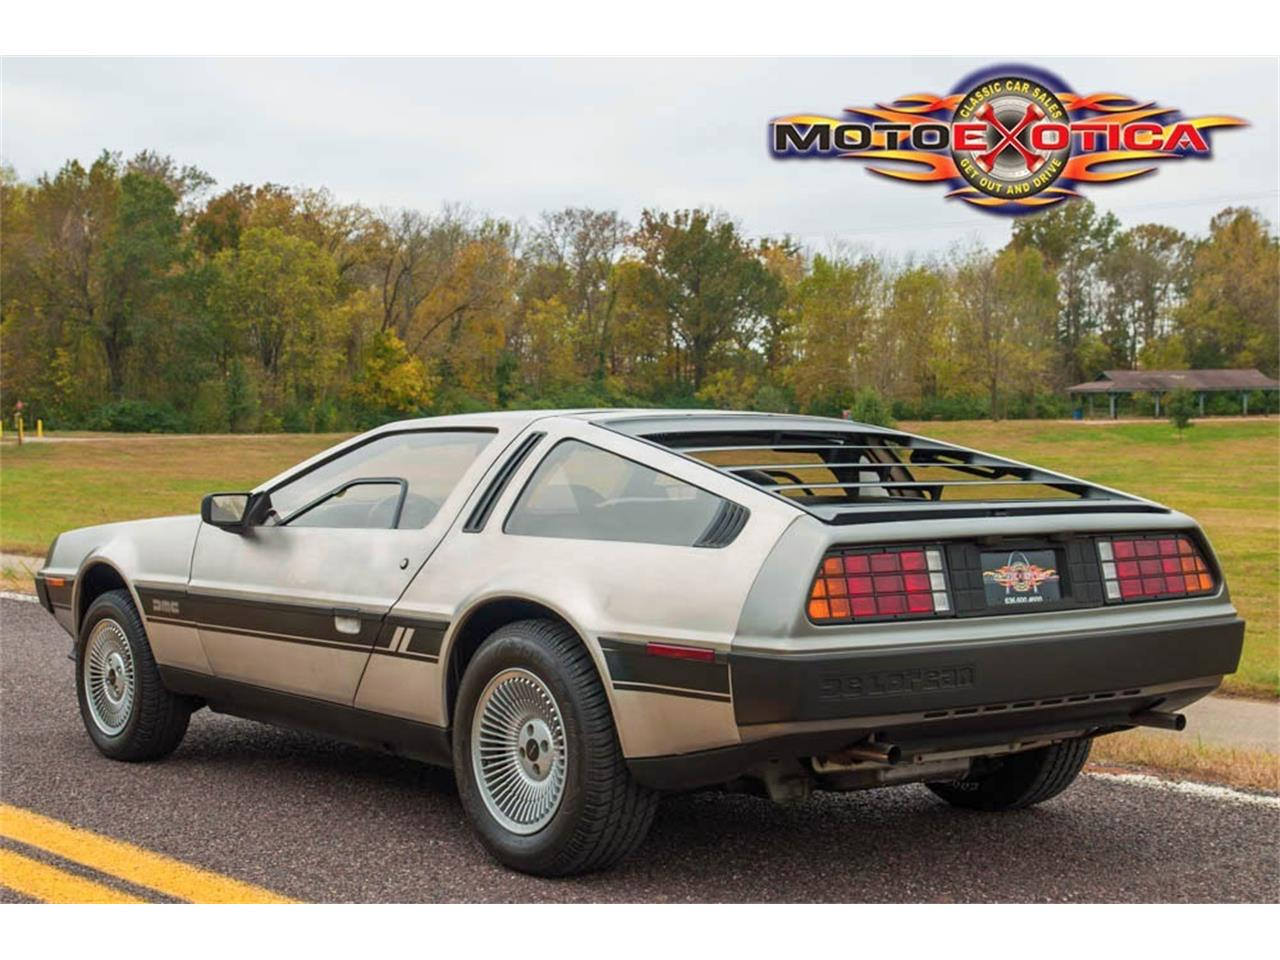 Large Picture of 1981 DMC-12 located in Missouri - $73,500.00 Offered by MotoeXotica Classic Cars - JPXR